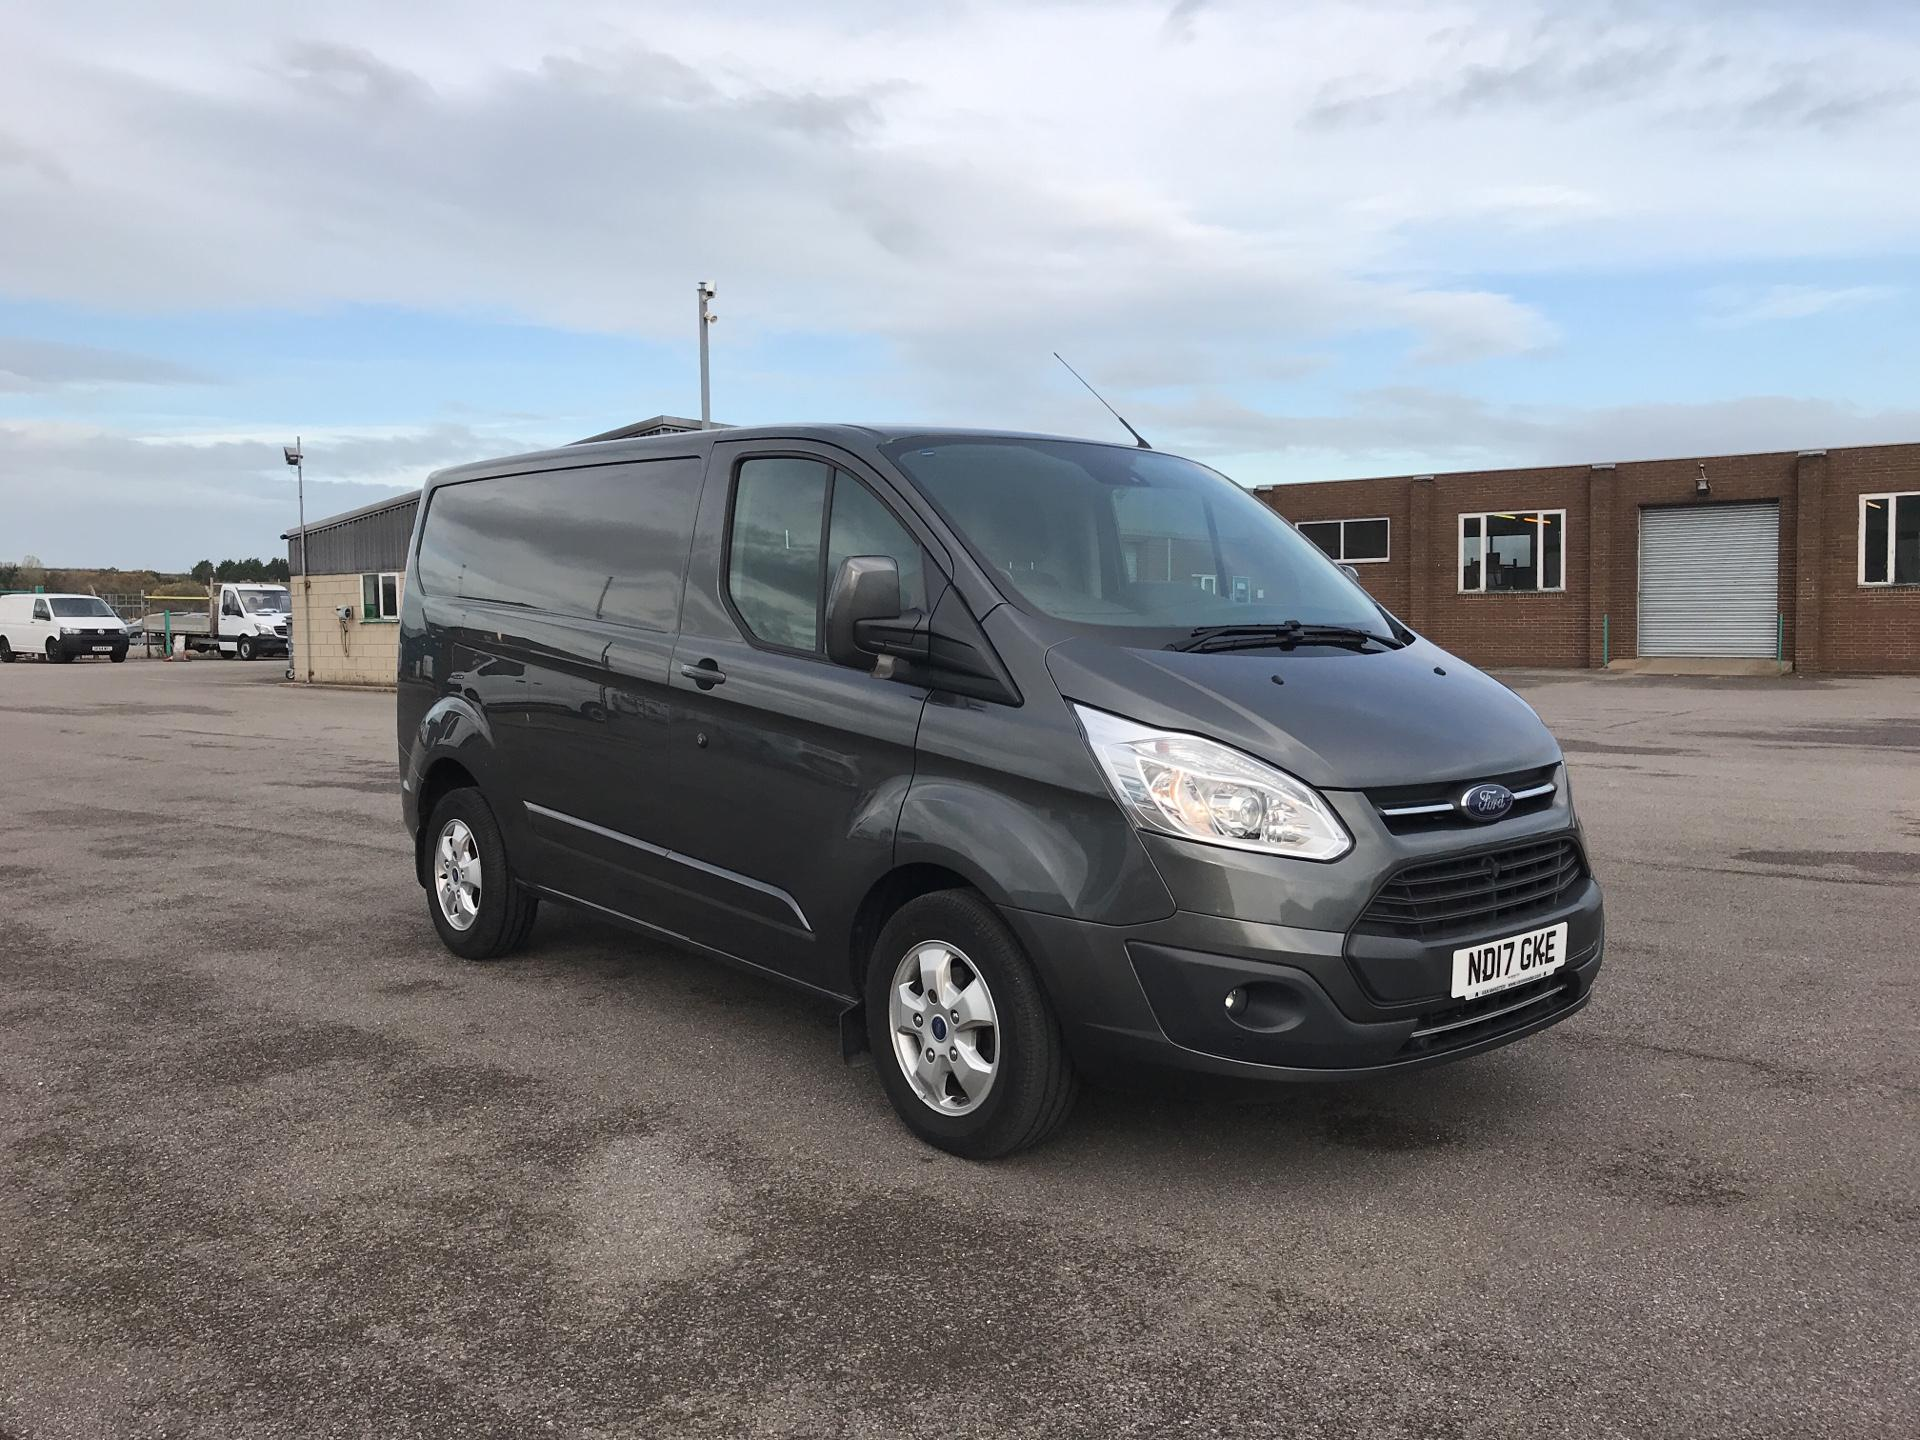 2017 Ford Transit Custom 270 L1 DIESEL FWD 2.0 TDCI 130PS LOW ROOF LIMITED VAN EURO 6  (ND17GKE)